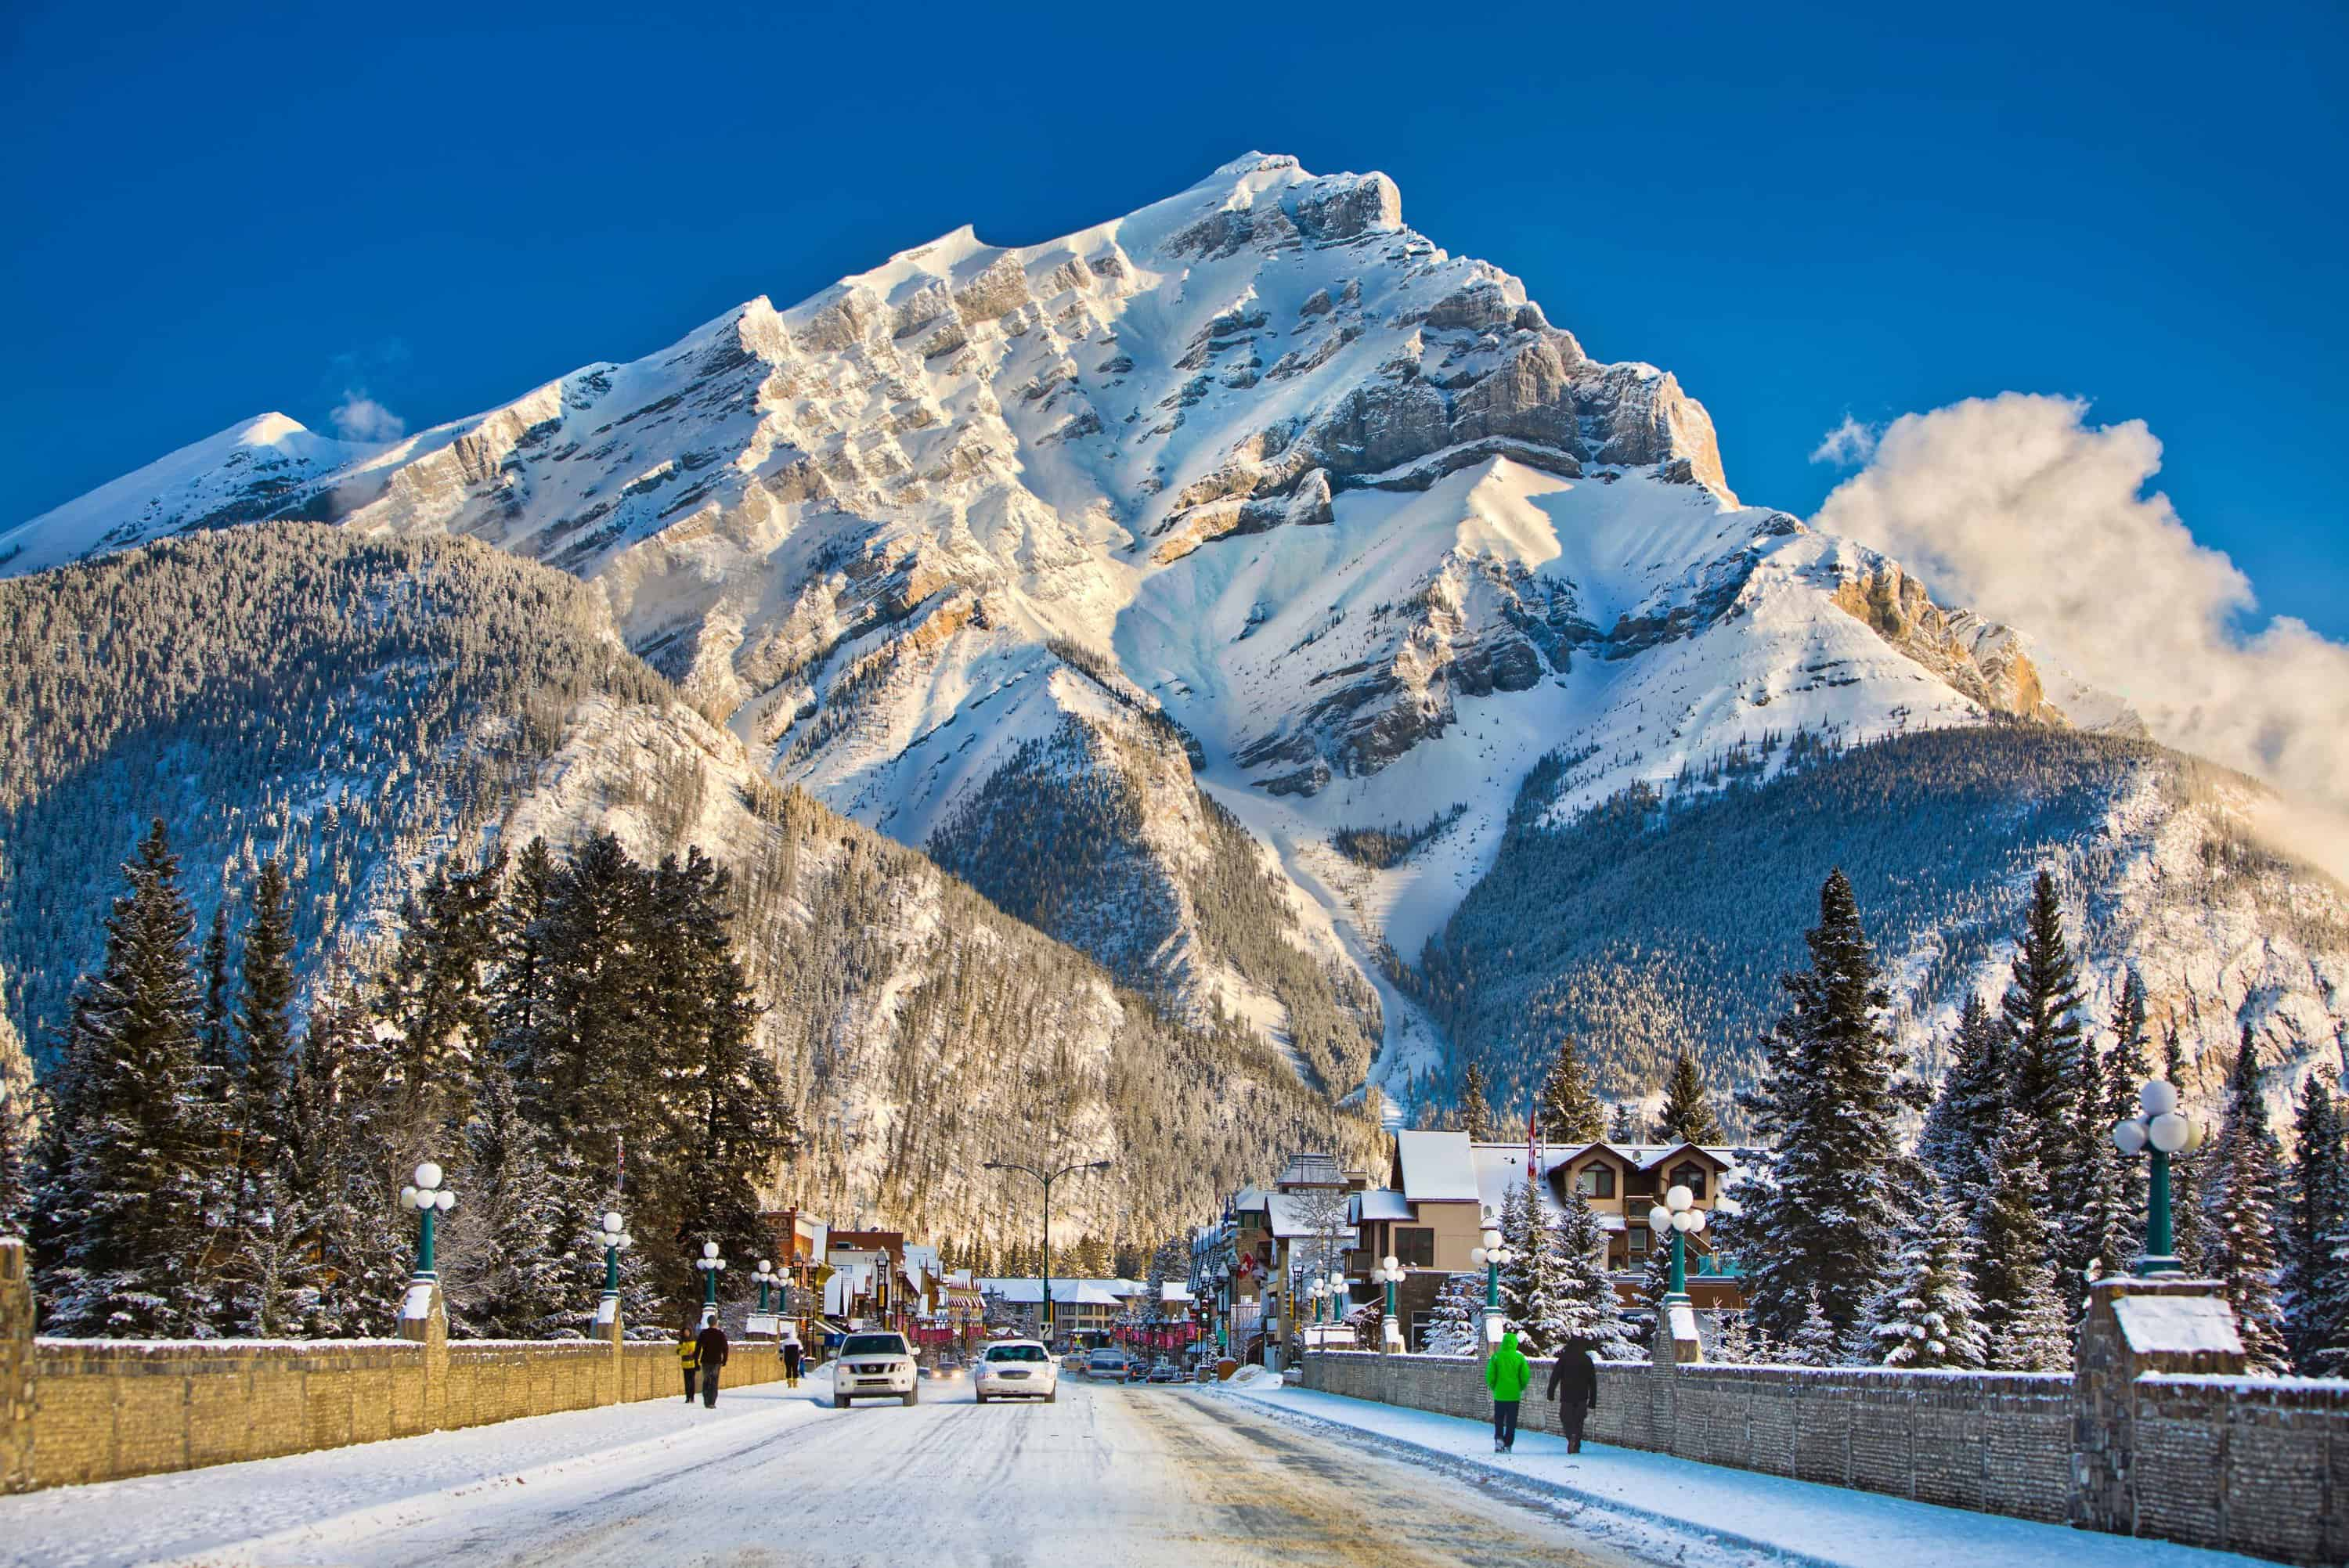 Banff and Lake Louise – Is This The Most Beautiful Place In The World To Ski? – Travel